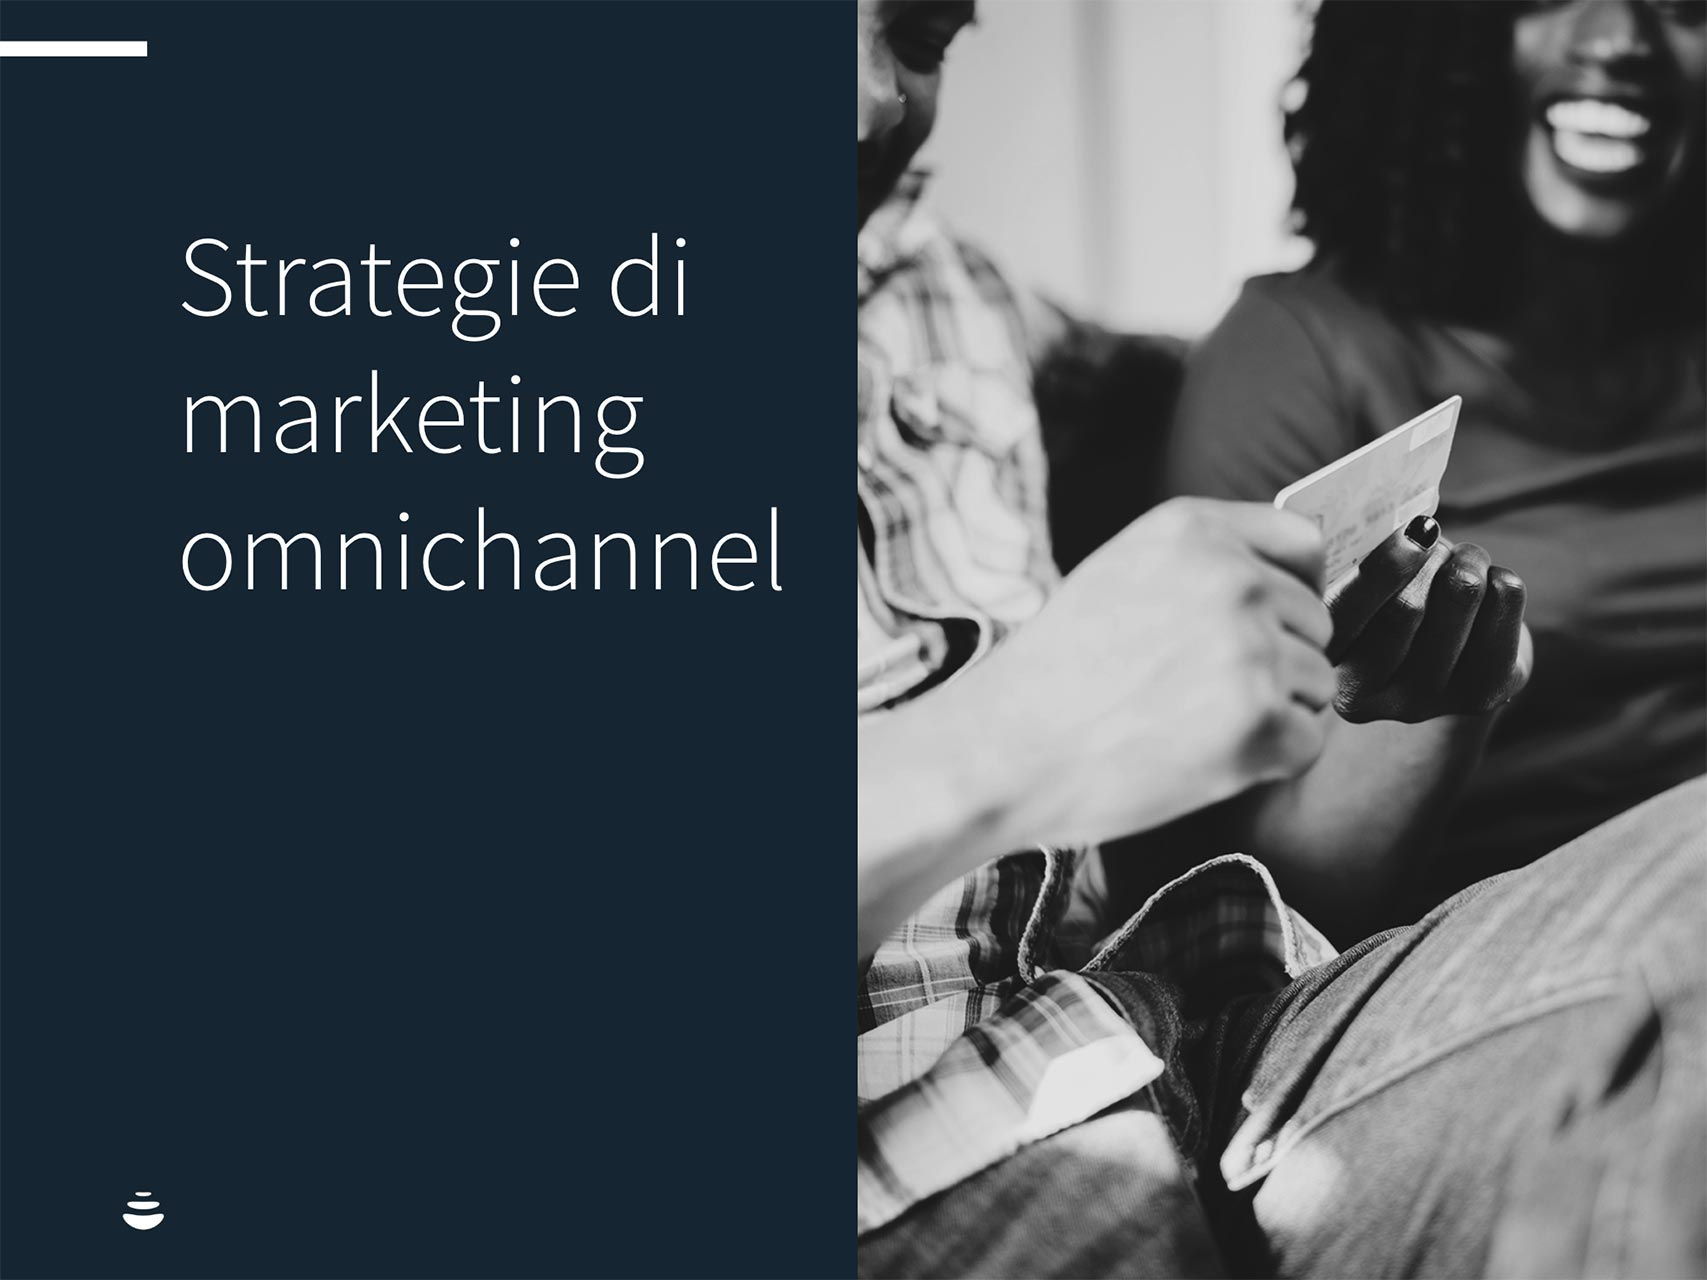 Marketing trend 2019 2020, Strategie di marketing omnichannel